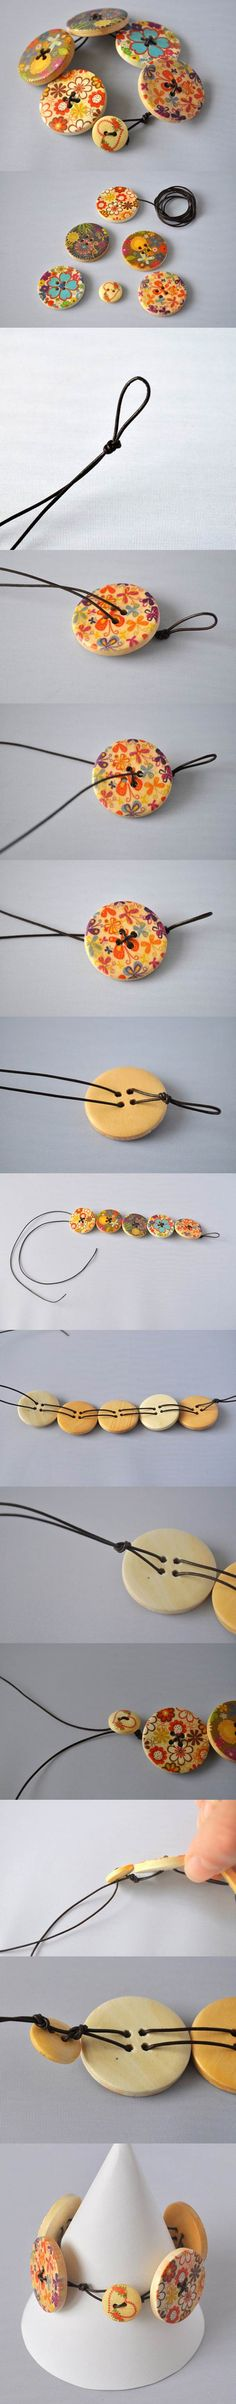 DIY Fashionable Button Bracelet | iCreativeIdeas.com Like Us on Facebook ==> https://www.facebook.com/icreativeideas